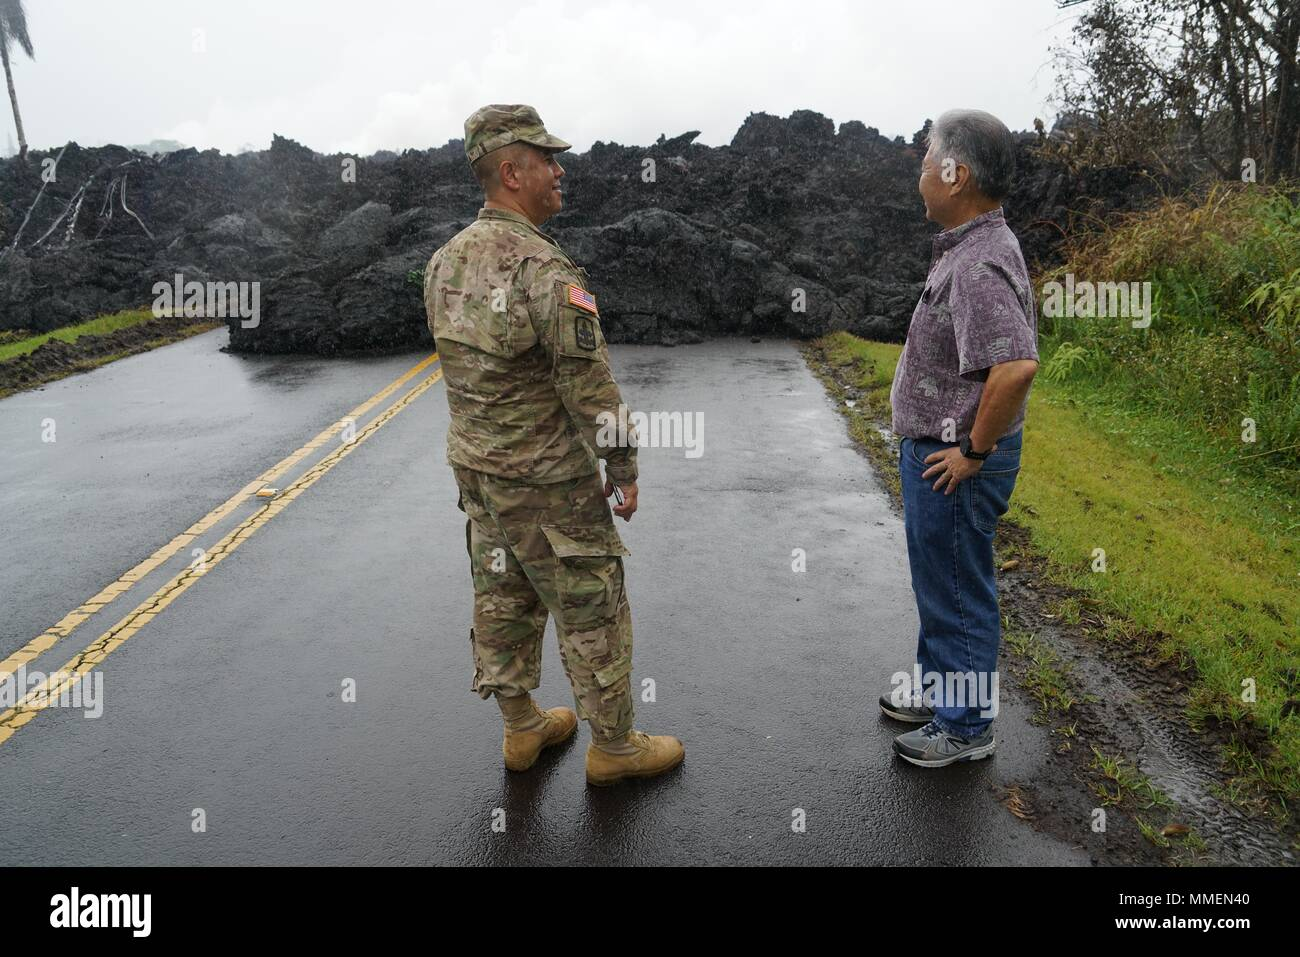 Hawaii Governor David Ige is briefed by National Guard Brig. Gen. Kenneth Hara, left, during a visit to the area affected by the Kilauea volcano eruption May 8, 2018 in Pahoa, Hawaii. The recent eruption continues destroying homes, forcing evacuations and spewing lava and poison gas on the Big Island of Hawaii. - Stock Image